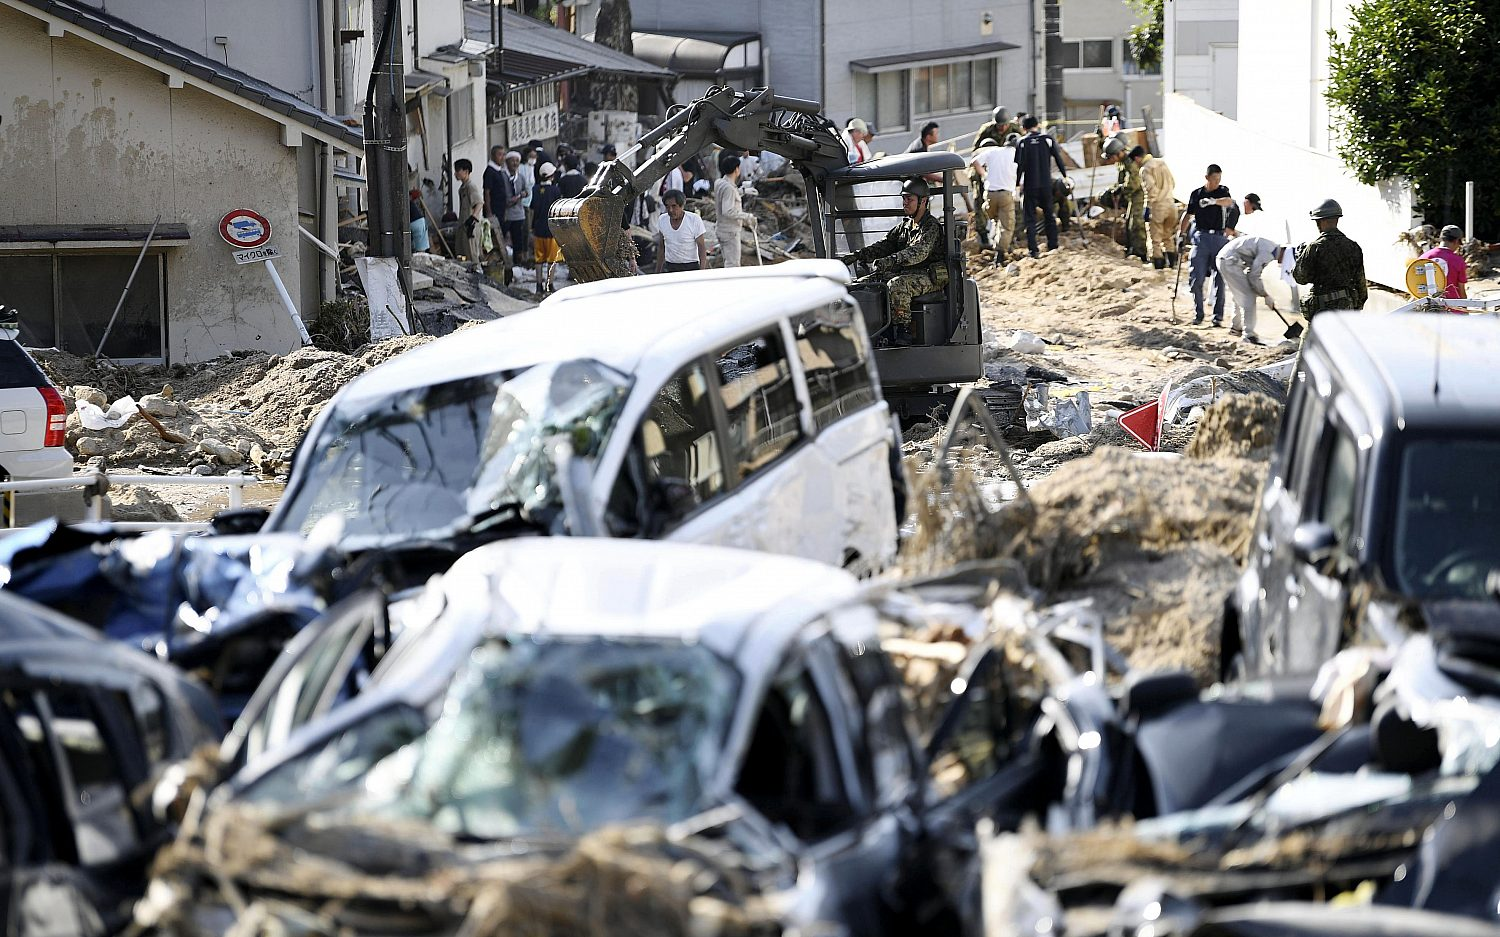 Death toll rises as rescue efforts continue in Japan